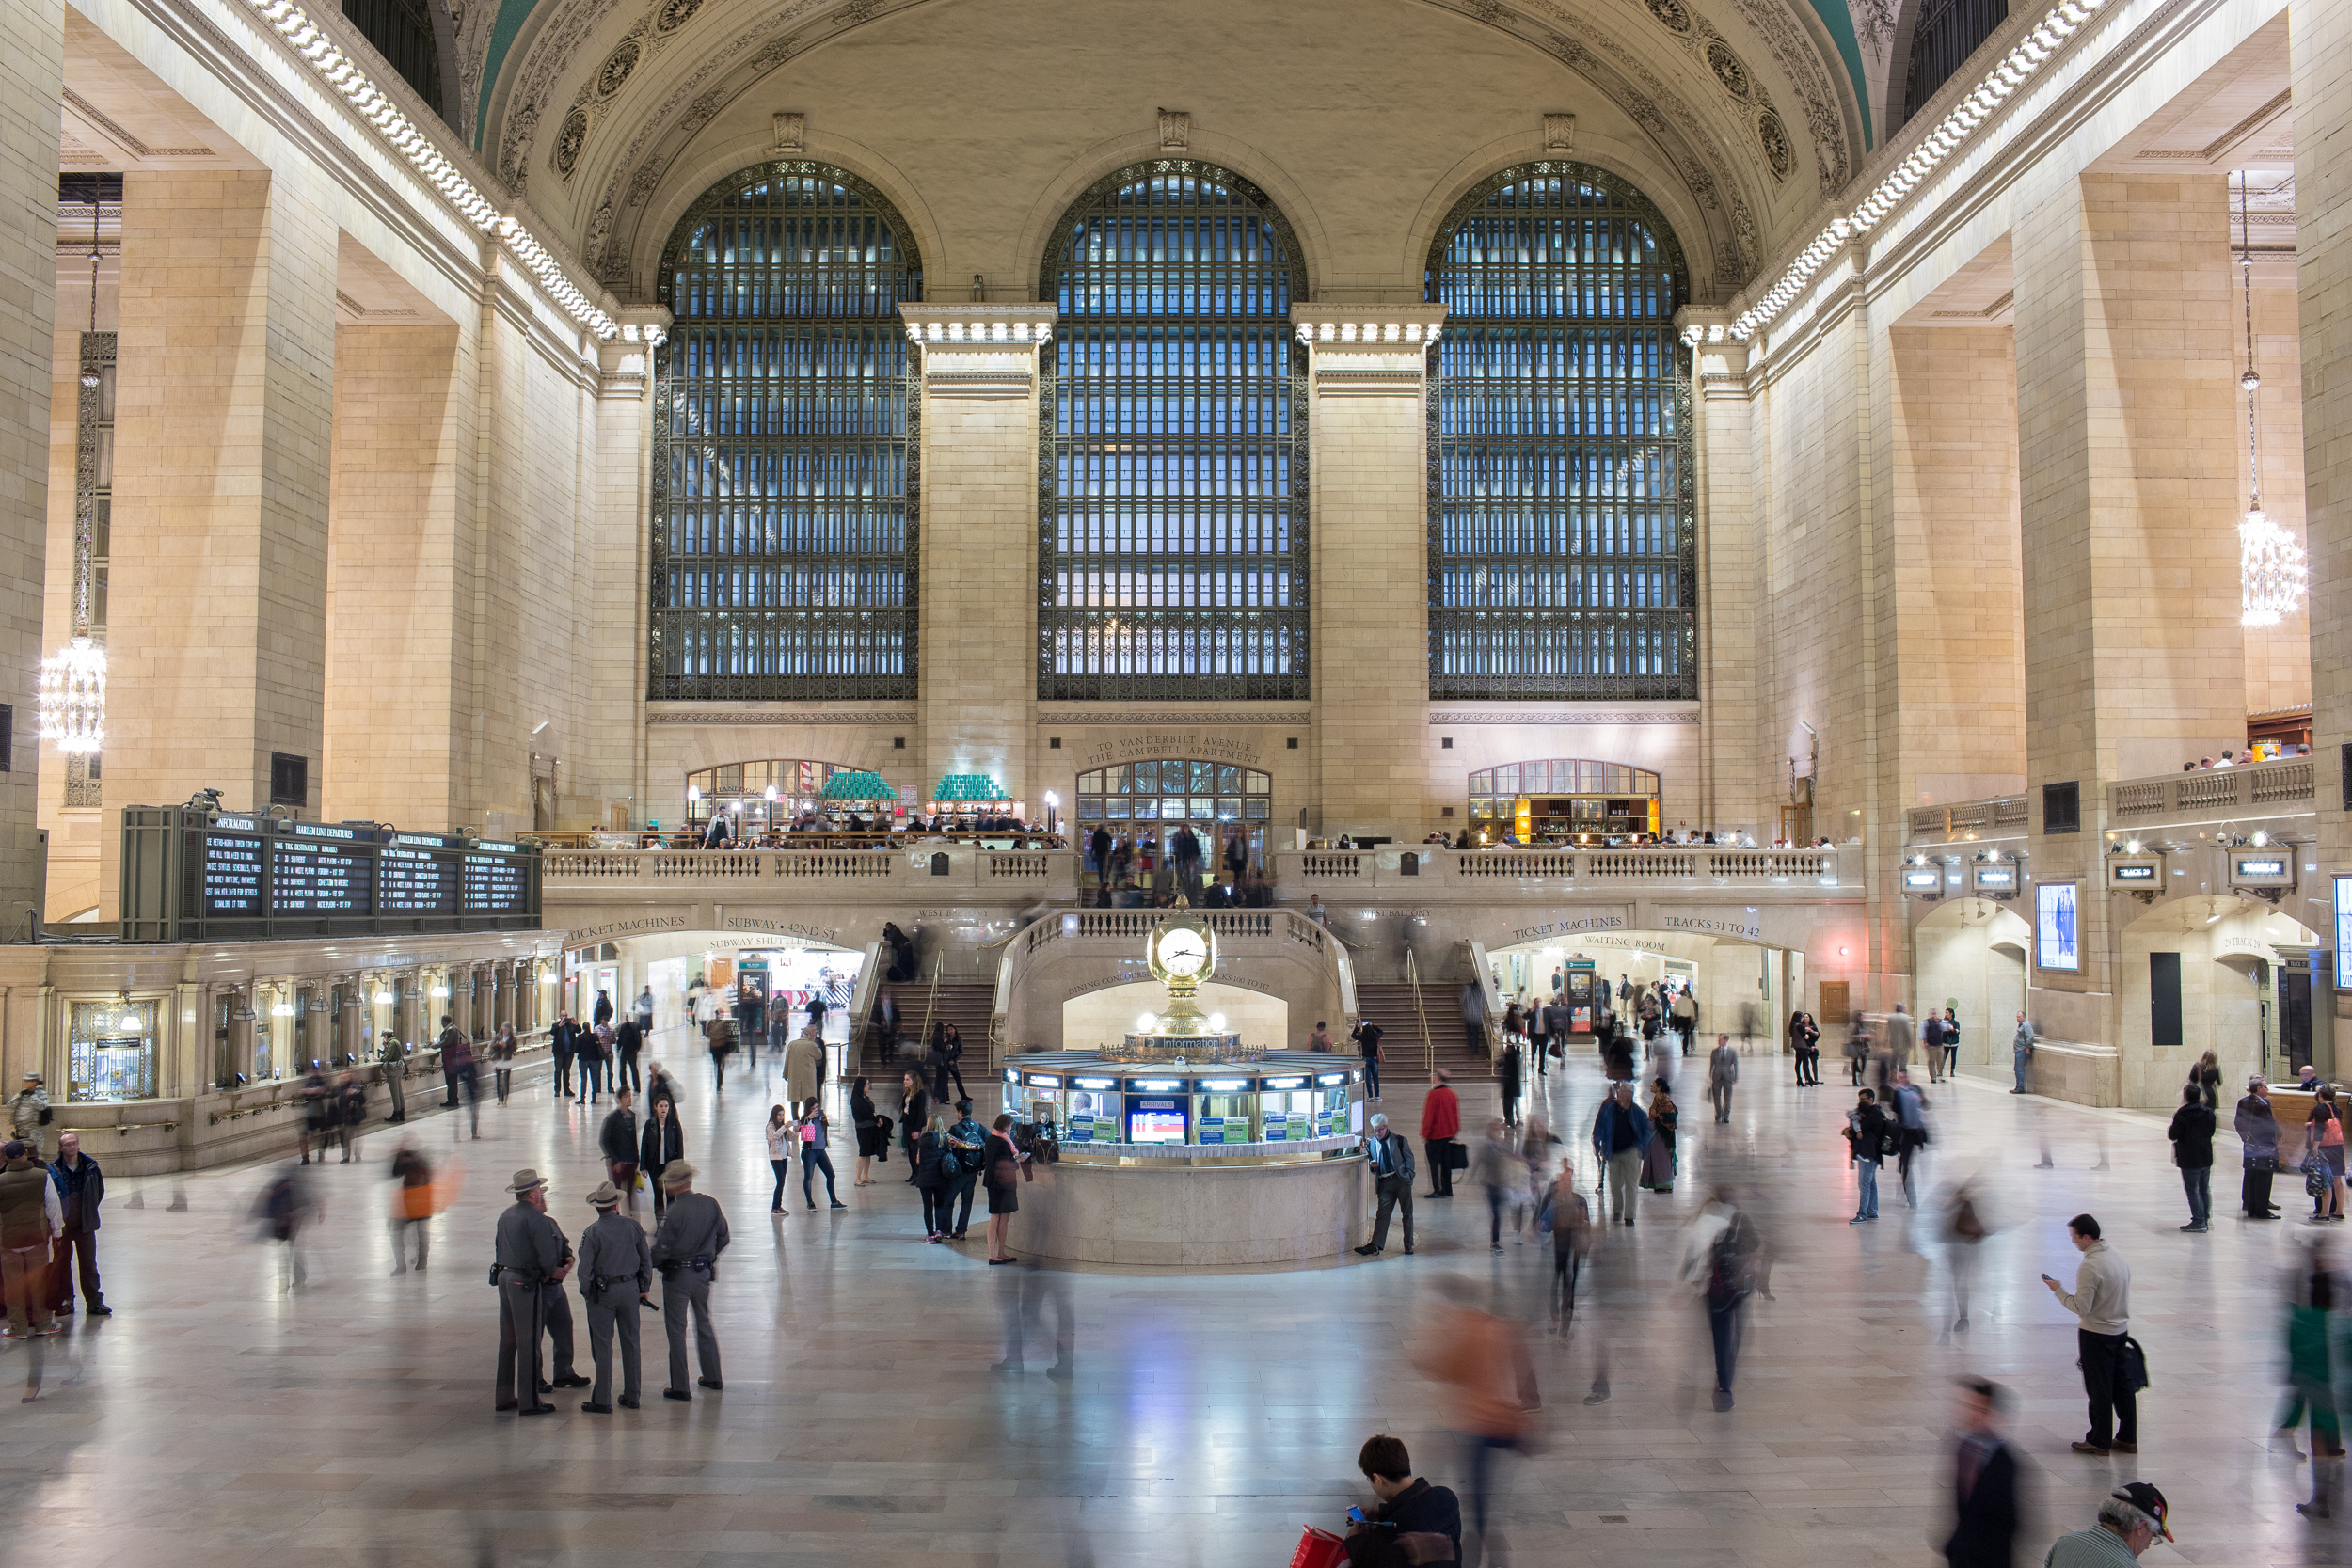 Grand Central Station on Oct. 20, 2015.